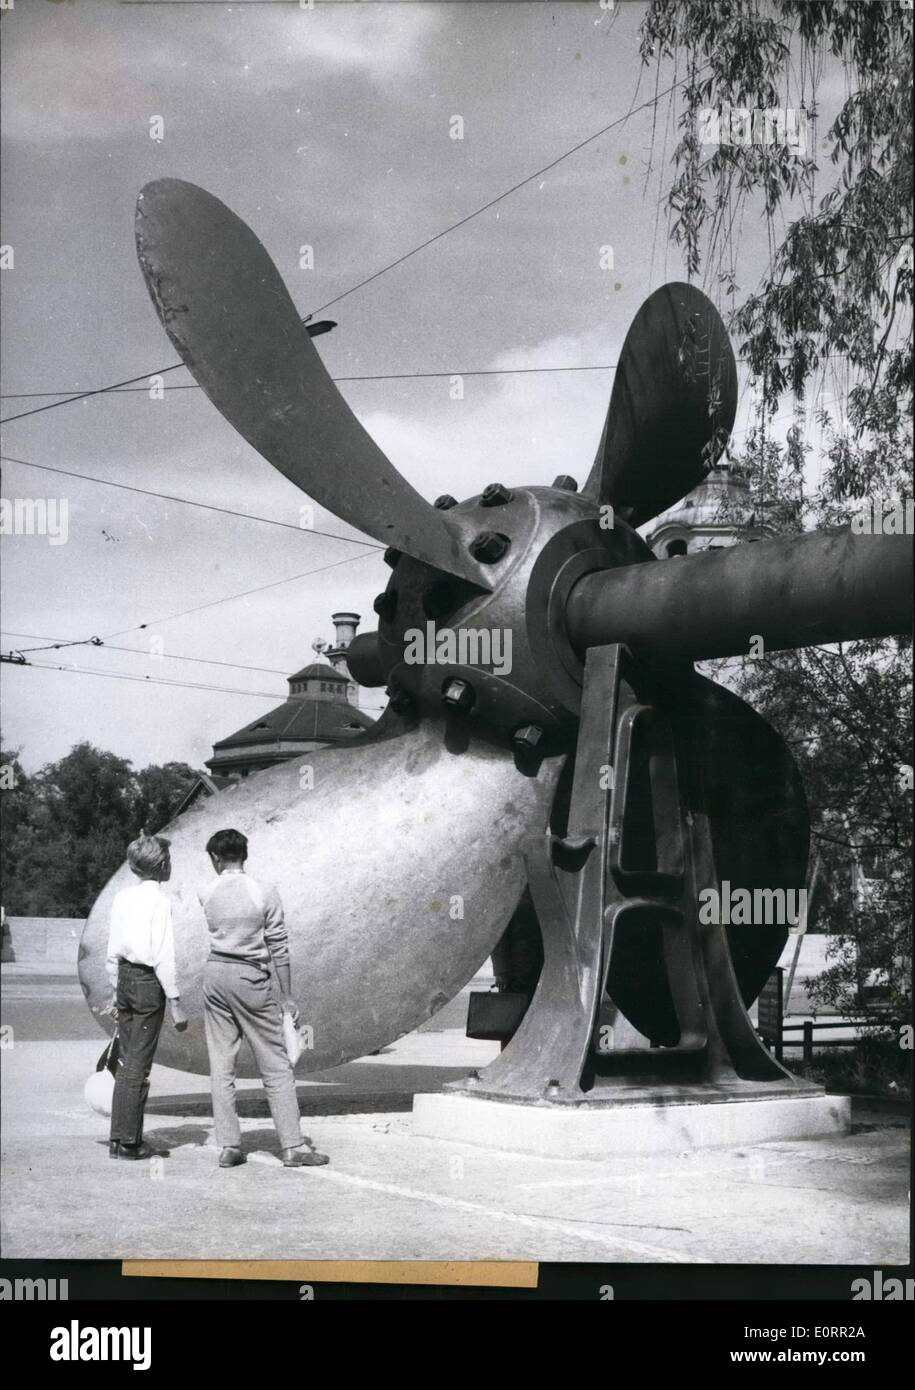 May 05, 1960 - Eve-catching is this ship screw which has been put up in front of the German Museum in Munich. It belongs to a 7000 ton ship built in 1890 which, driven by 120000 HP, crossed the oceans with a speed of 36 km/h. The screw has a diameter of 6,85 metres and weighs 42 tons. - Stock Image